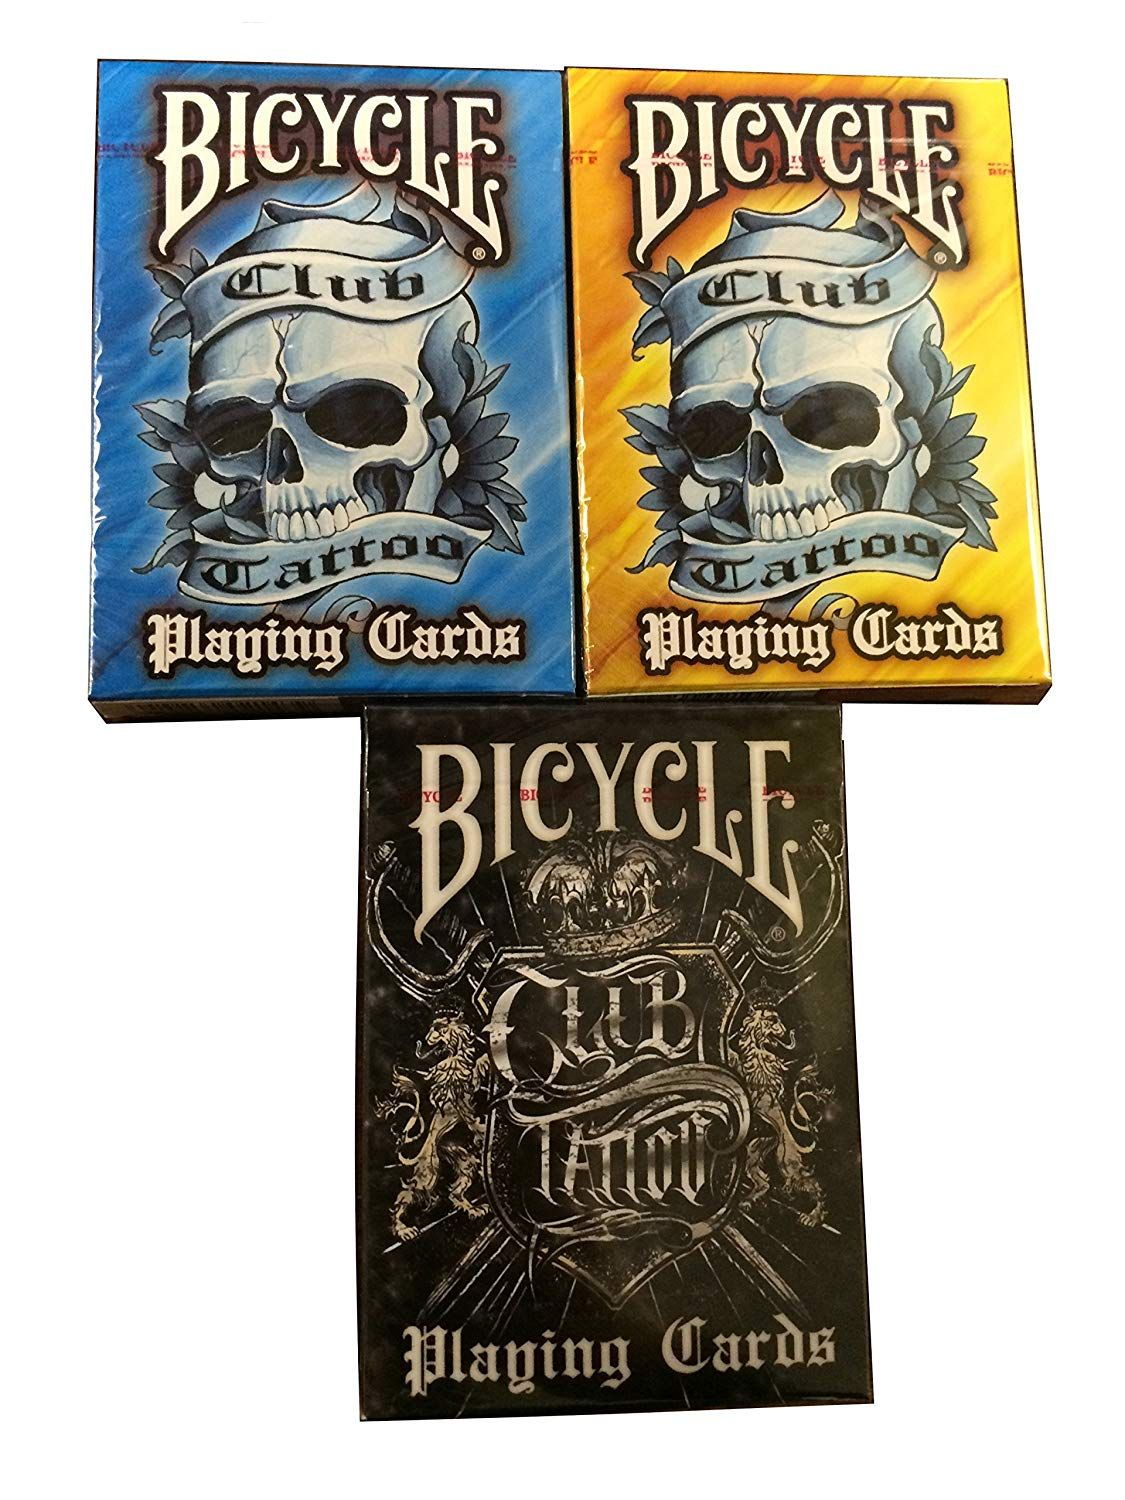 BICYCLE CLUB TATTOO PLAYING CARDS 3 DECK SET You can